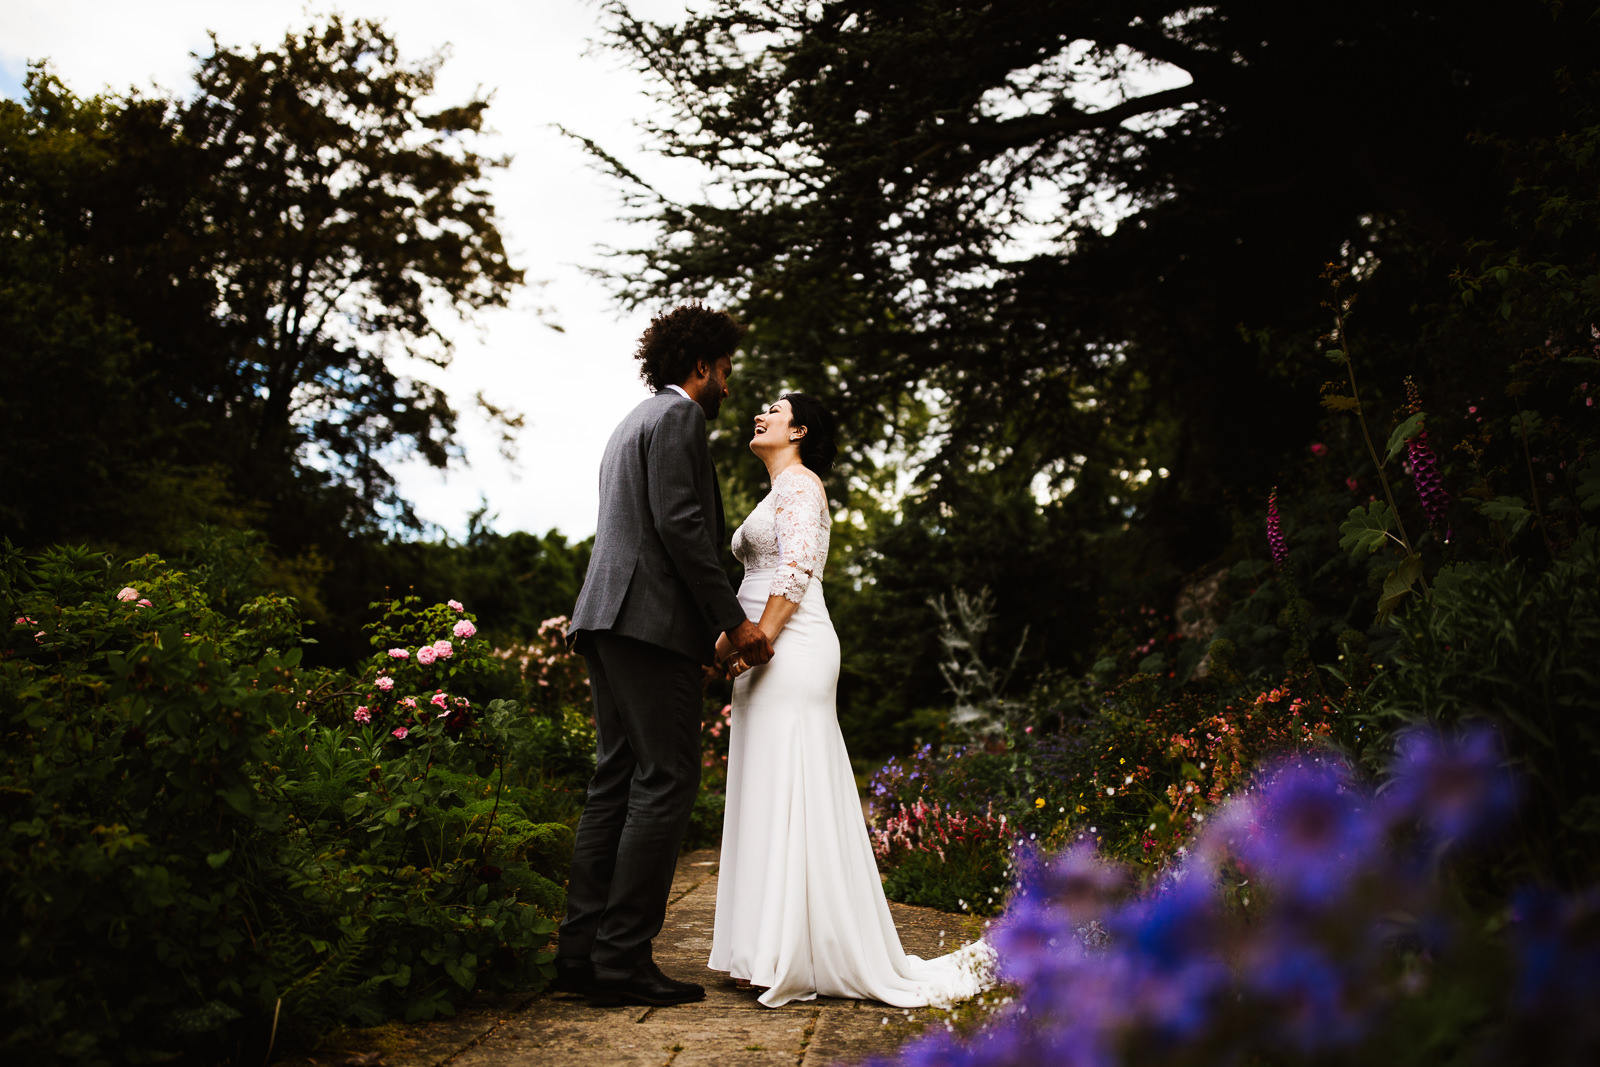 Bride and groom together in the gardens at Askham Hall